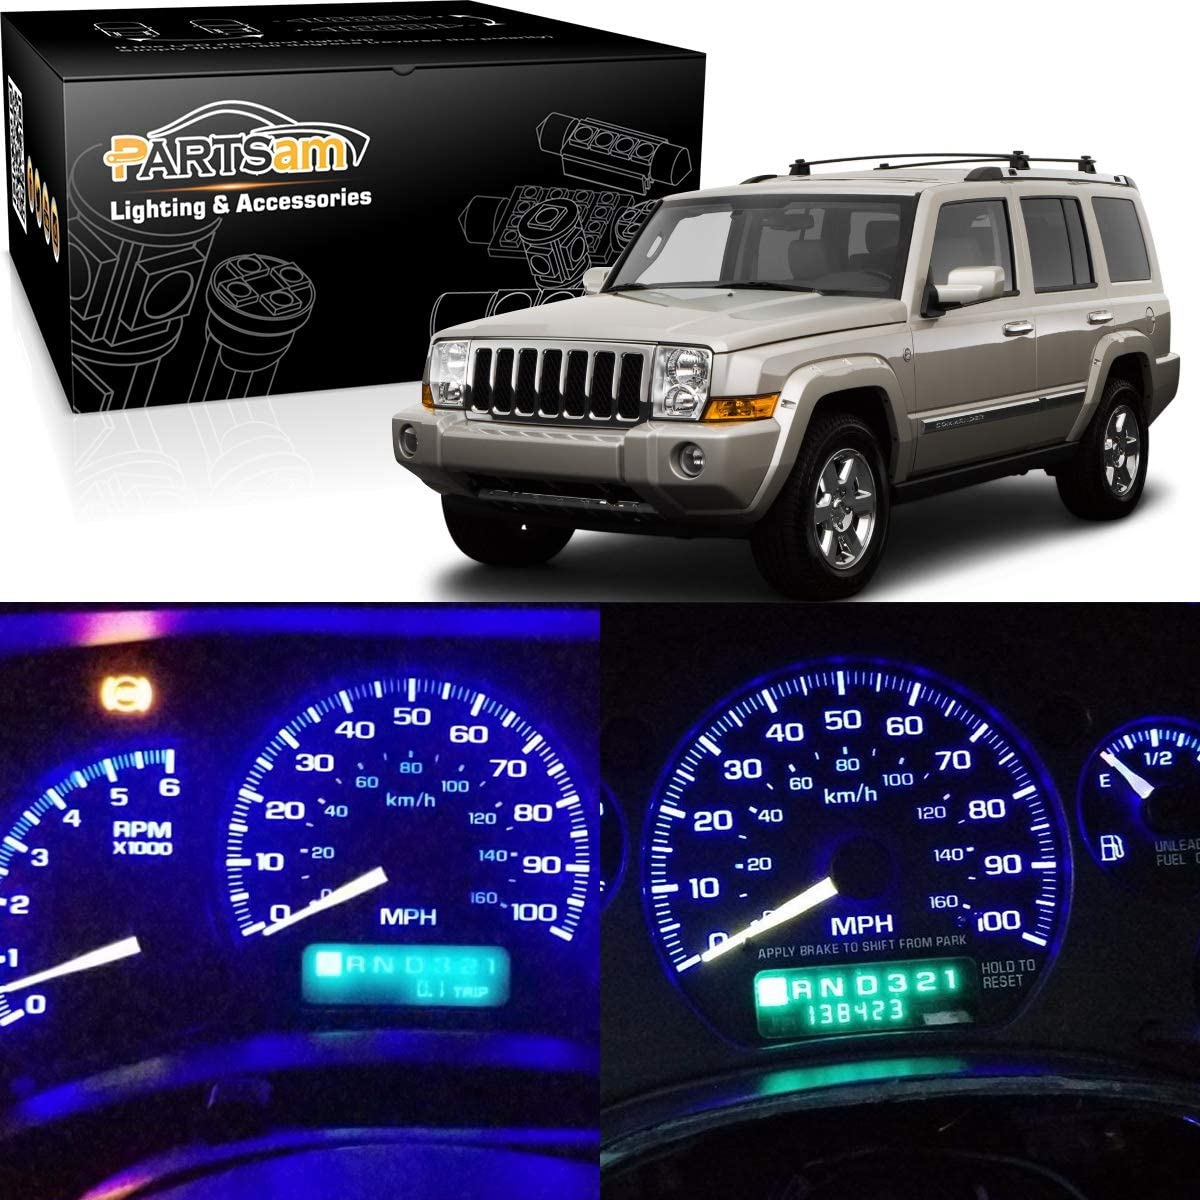 Blue Partsam Speedometer Indicator LED Light Package Instrument Panel Gauge Cluster Dashboard LED Light Bulbs Compatible with Jeep Wrangler 1997-2006